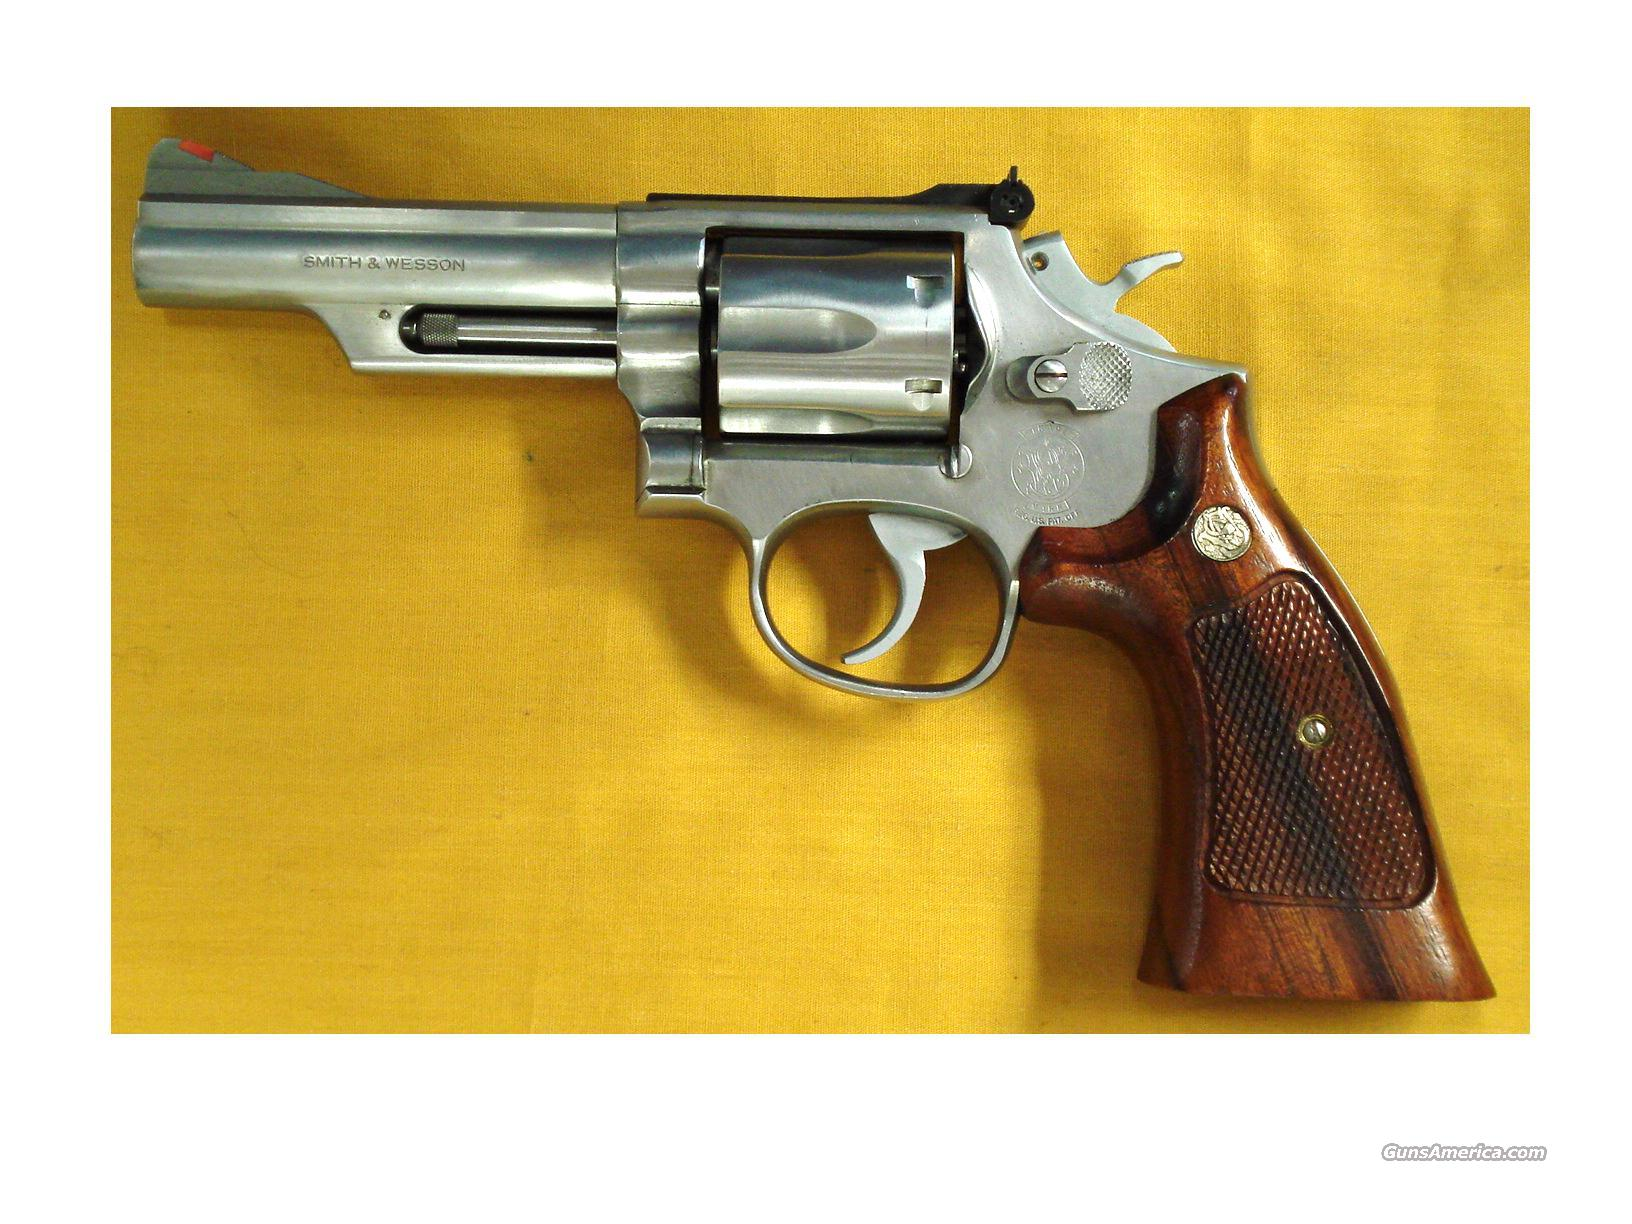 "S&W 66-2 .357 MAGNUM 4"" BARREL  Guns > Pistols > Smith & Wesson Revolvers > Full Frame Revolver"